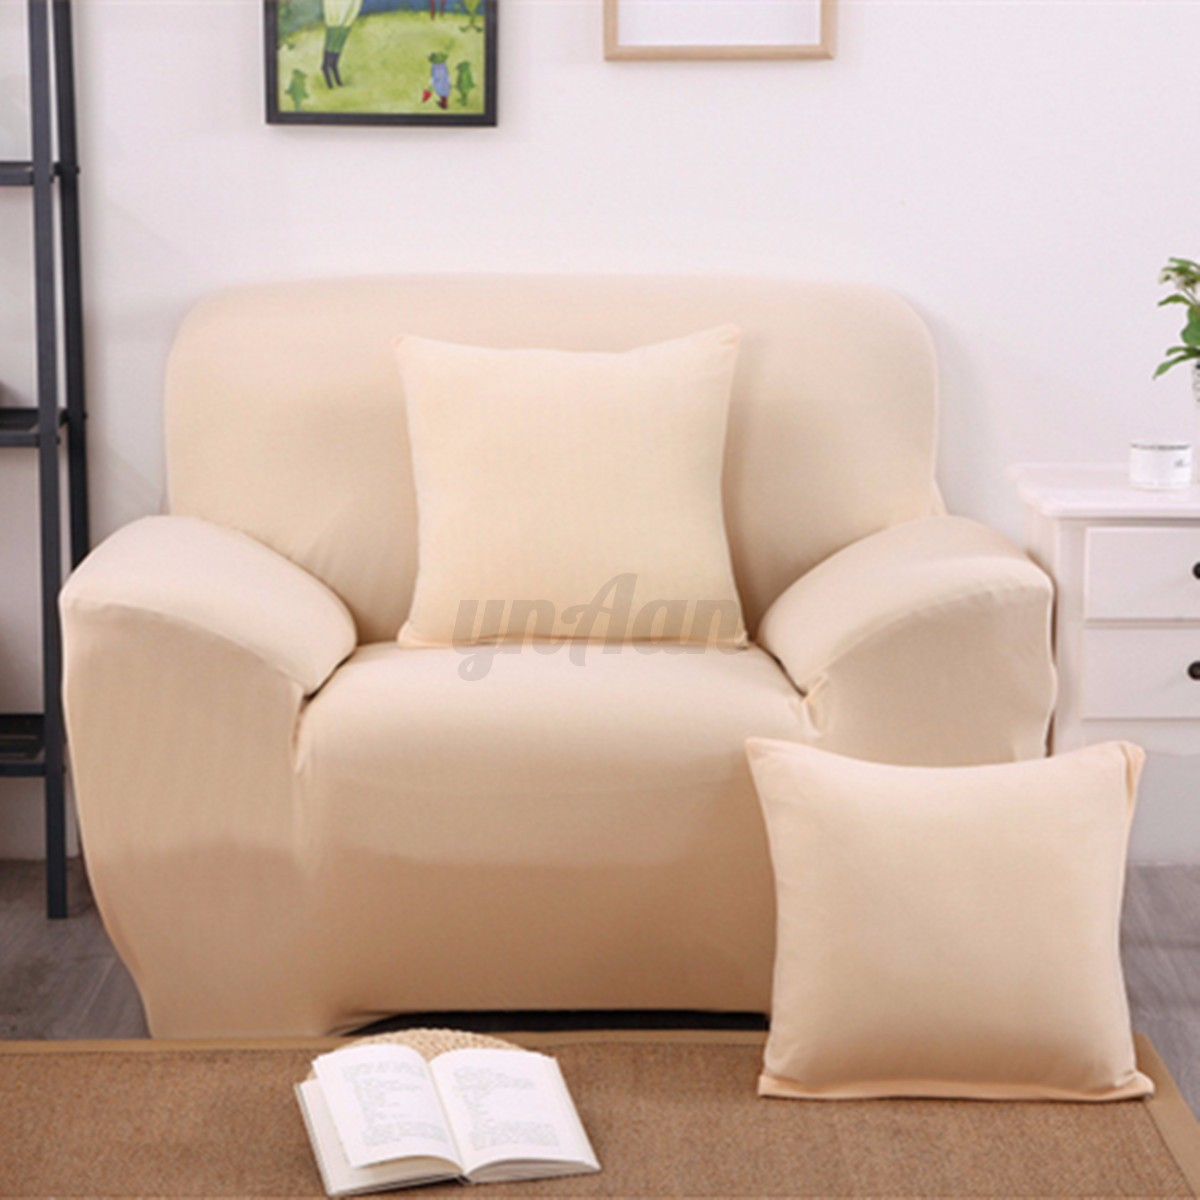 l shape stretch elastic sofa chair pillowcase 1 2 3 seater sectional cover couch ebay. Black Bedroom Furniture Sets. Home Design Ideas